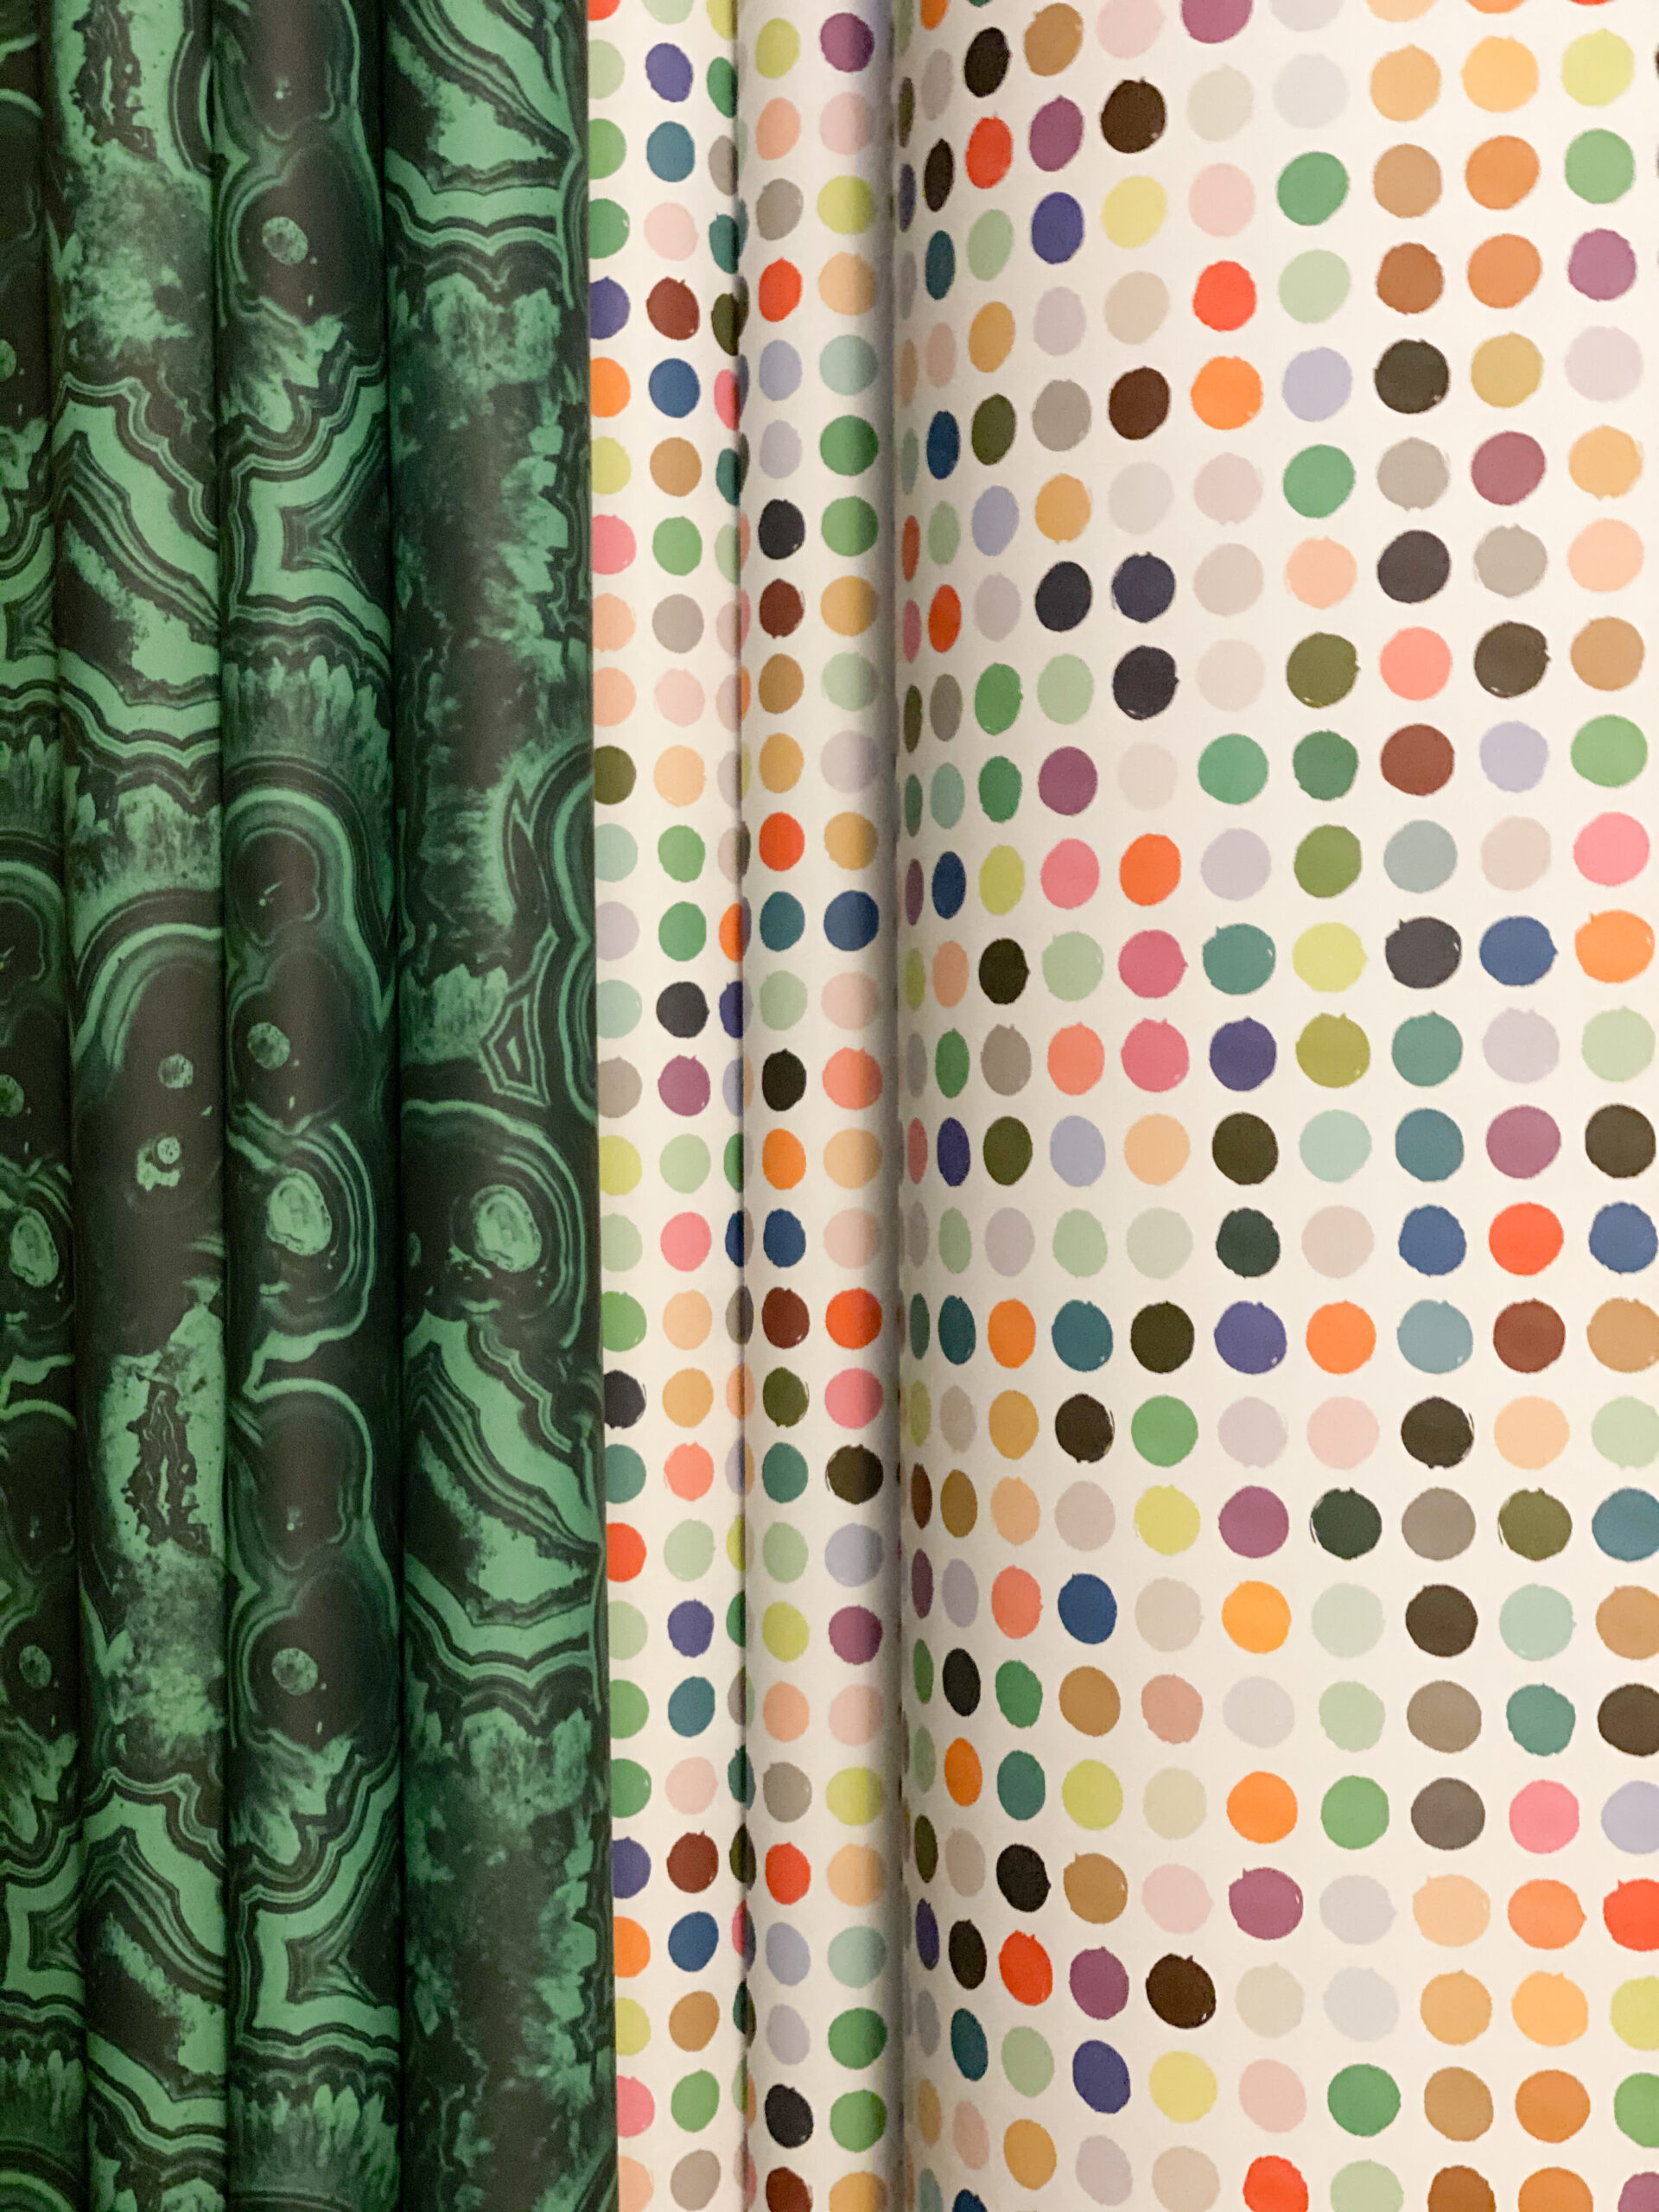 malachite print paper and colorful dots papers